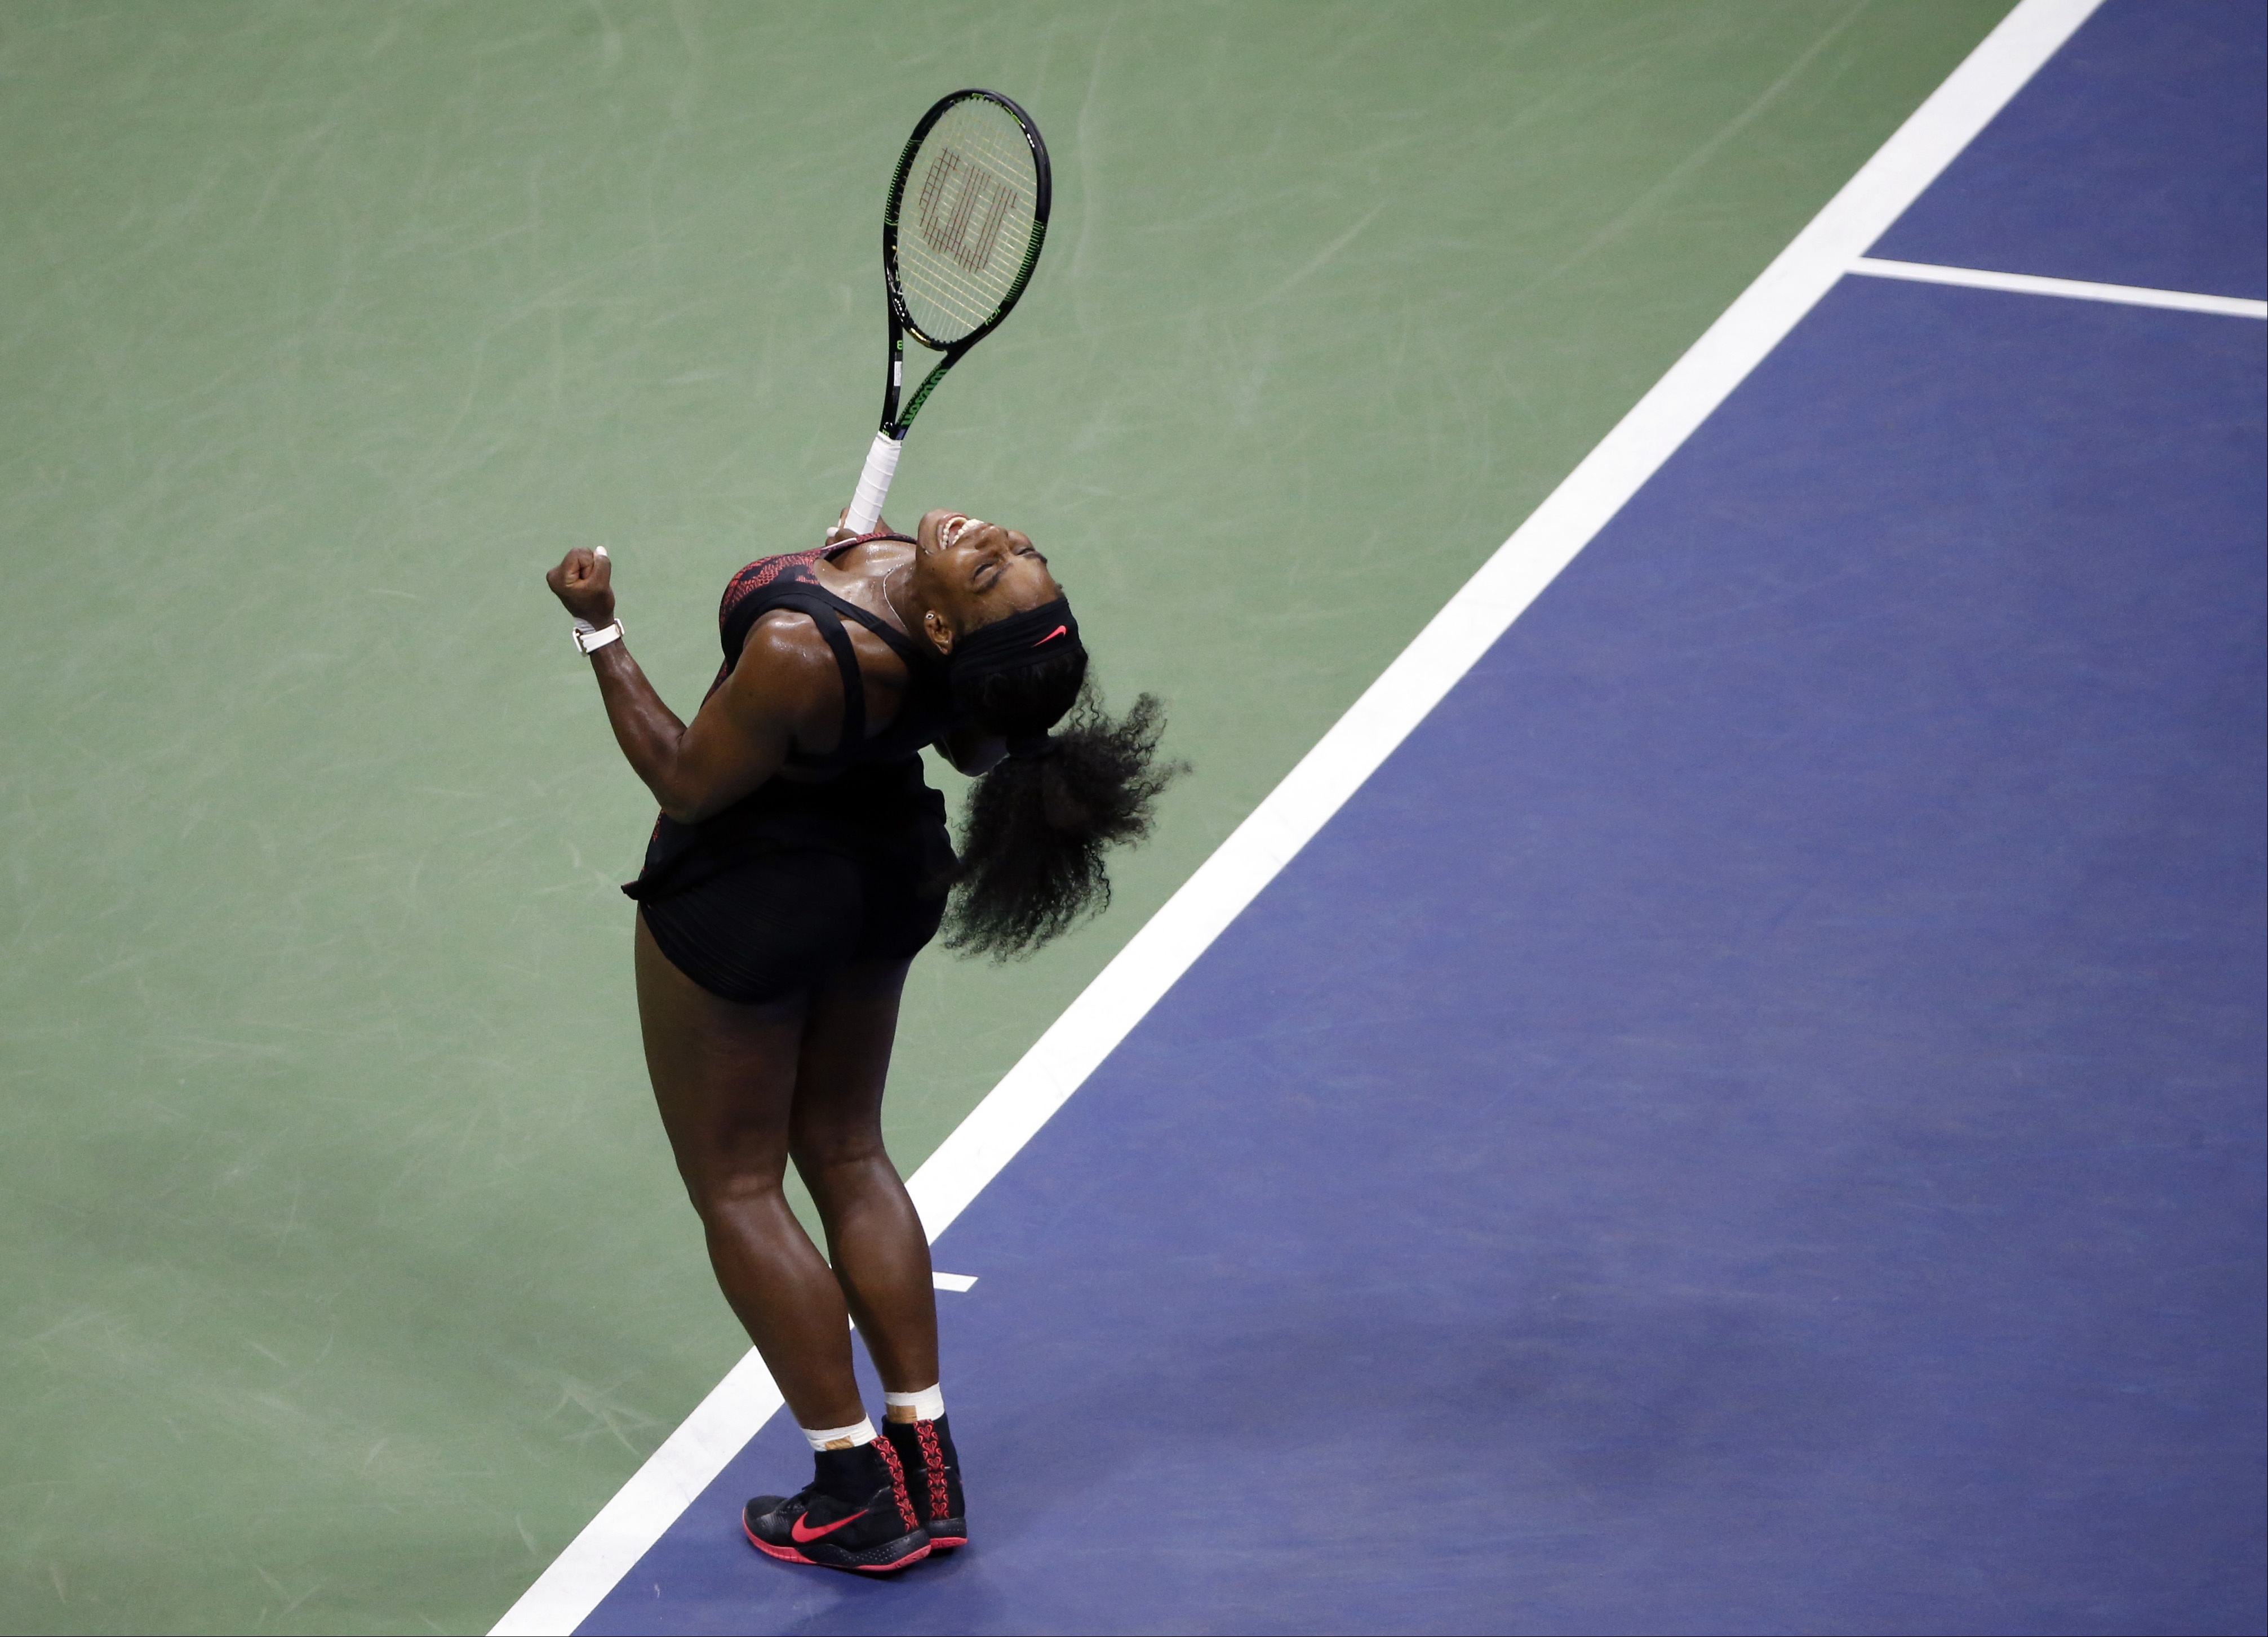 Serena Williams reacts after beating Venus Williams during a quarterfinal match at the U.S. Open tennis tournament, Tuesday, Sept. 8, 2015, in New York. (AP Photo/Jason DeCrow)